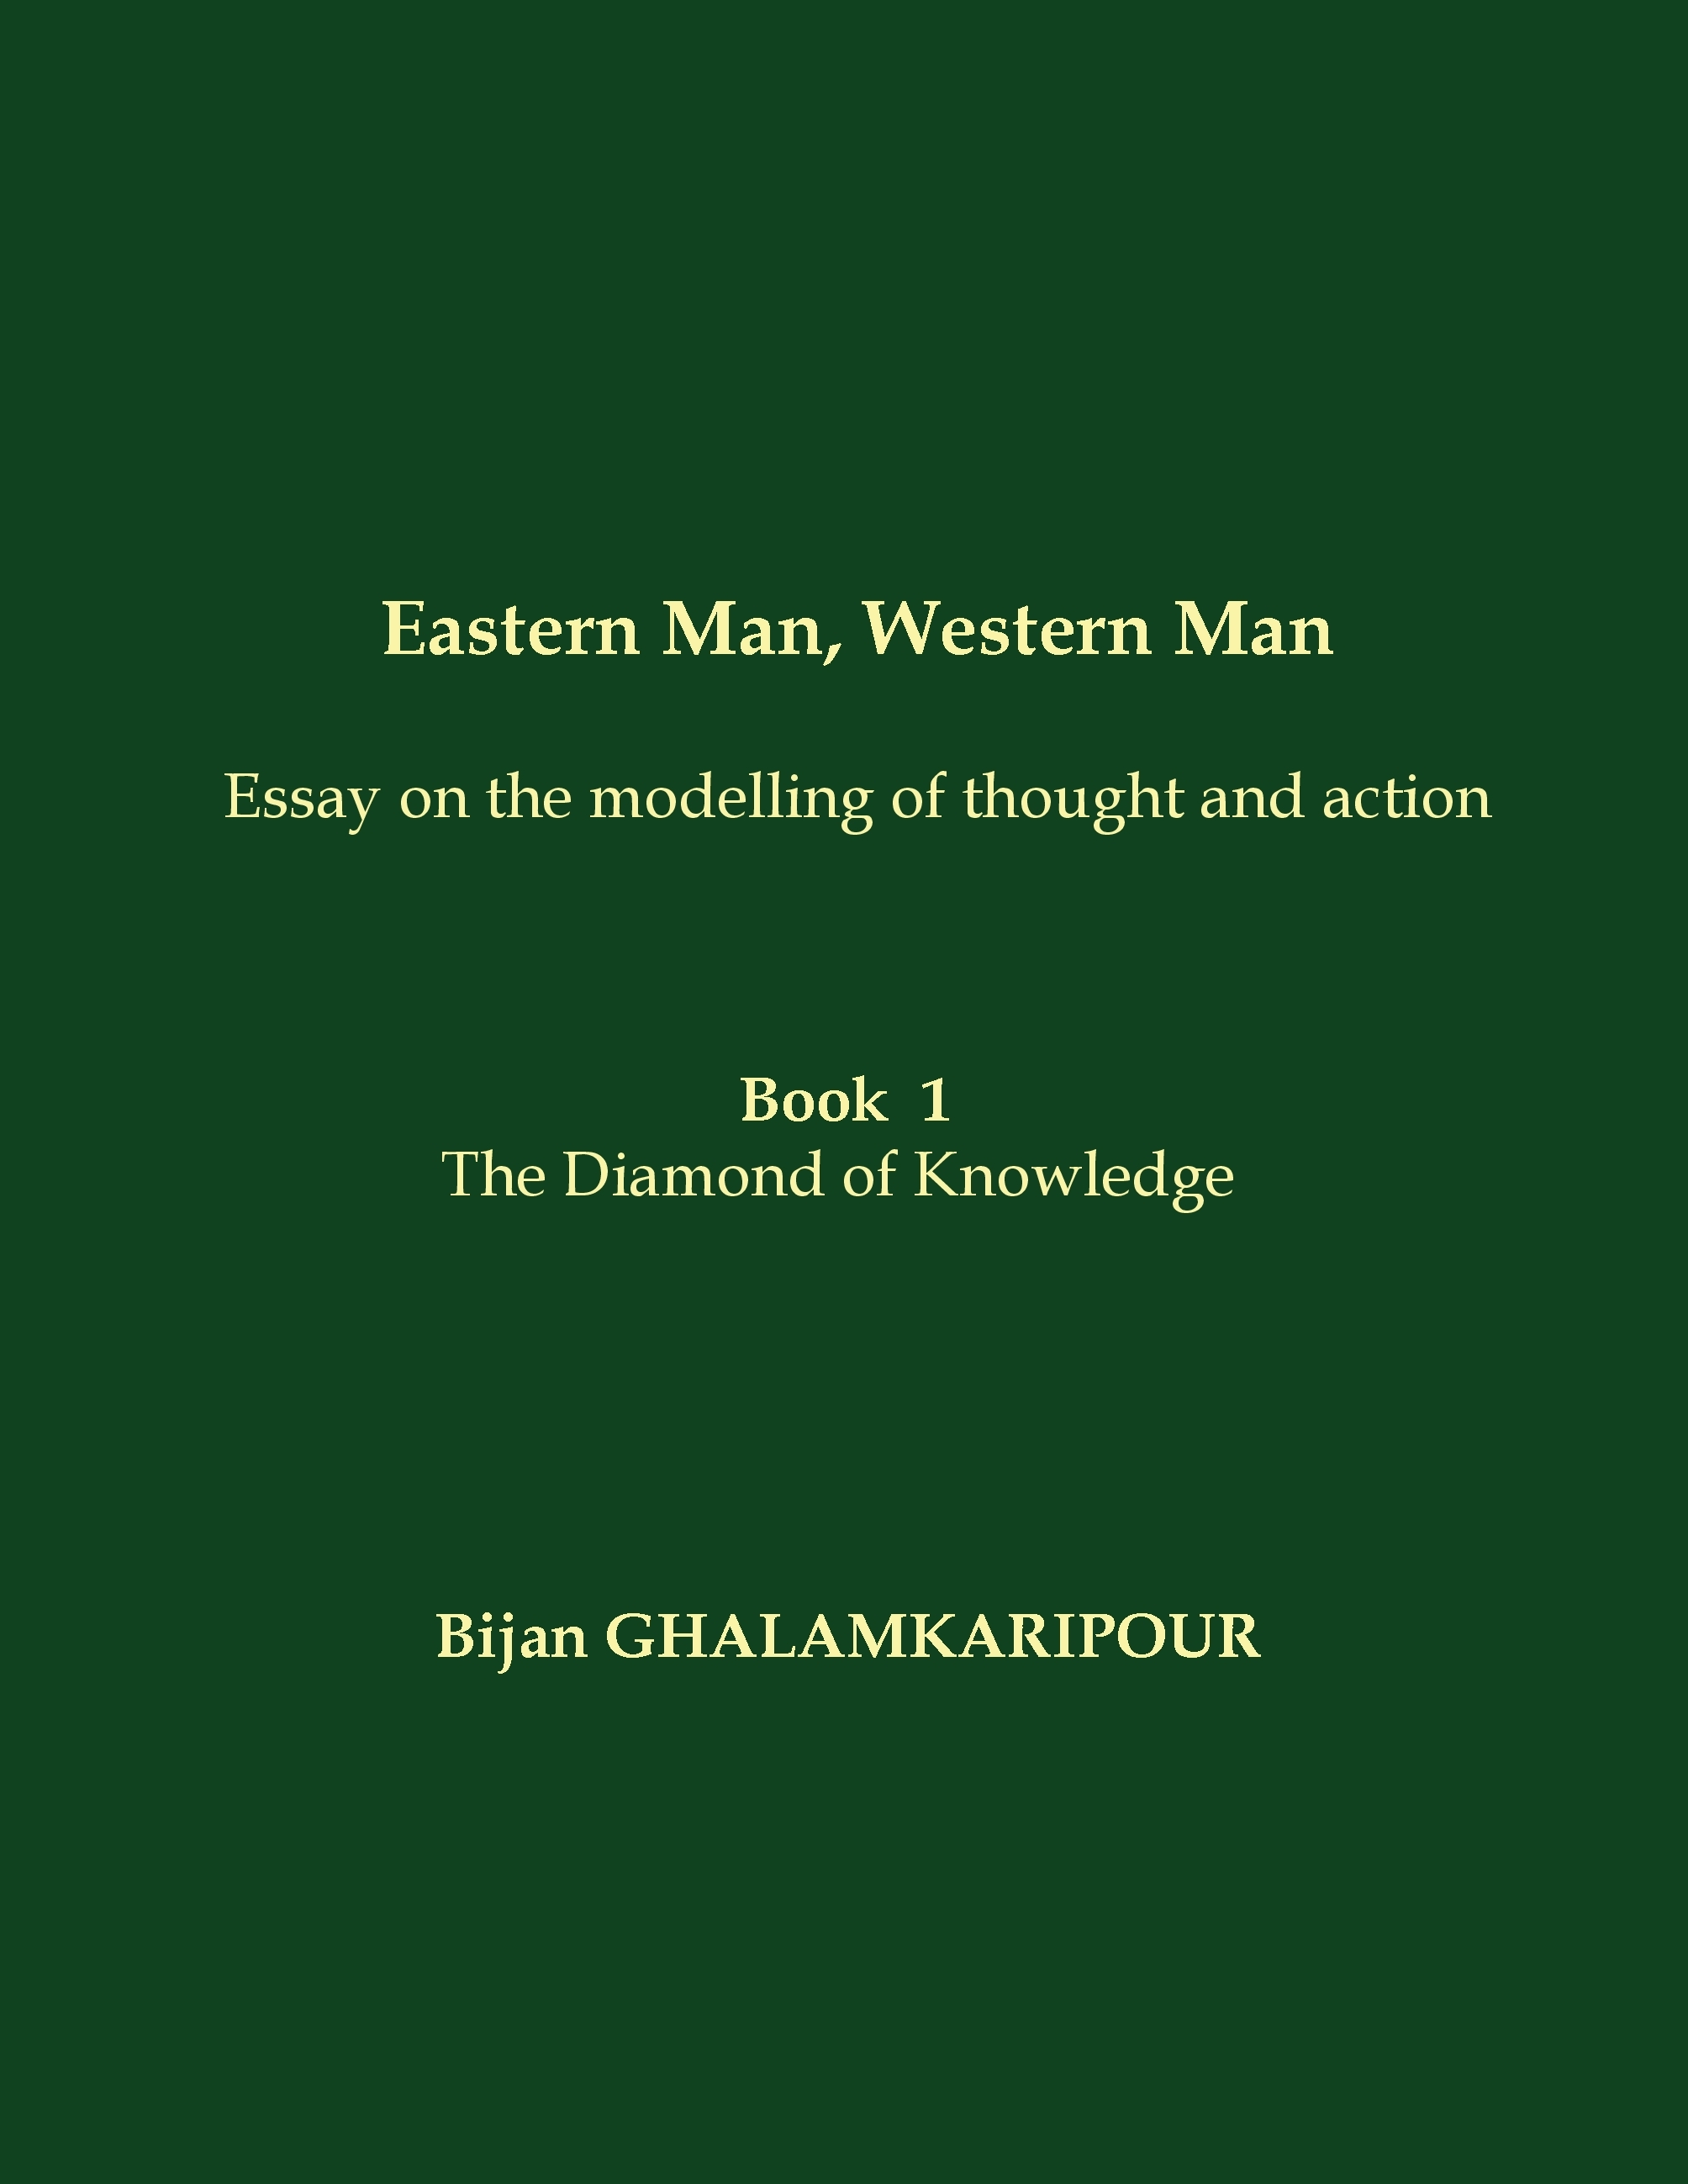 EASTERN MAN WESTERN MAN (ESSAY ON THE MMODELLING OF THOUGHT AND ACTION)